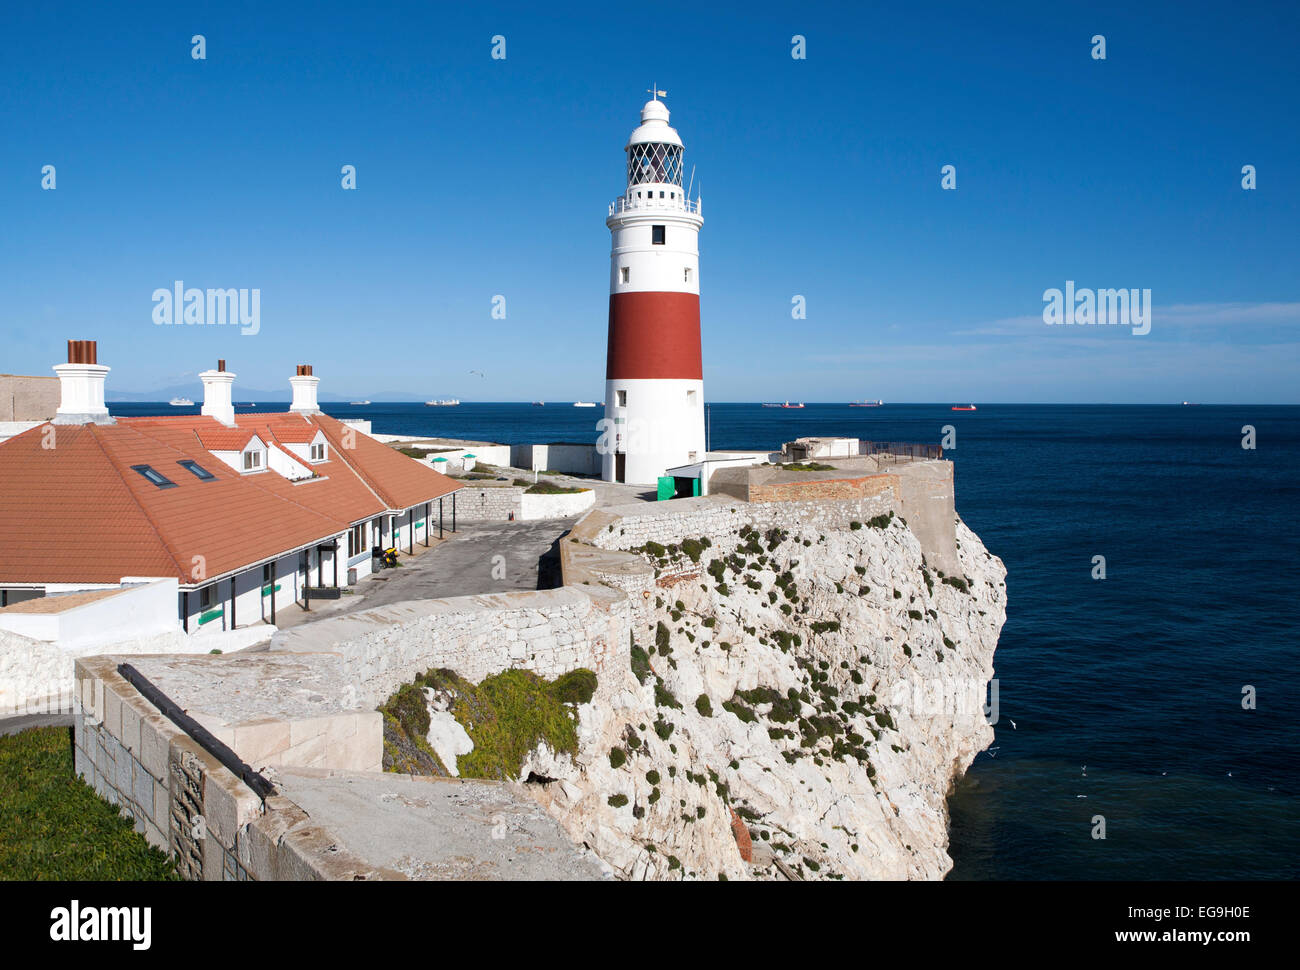 Red and white striped lighthouse at Europa Point, Gibraltar, British territory in southern Europe - Stock Image